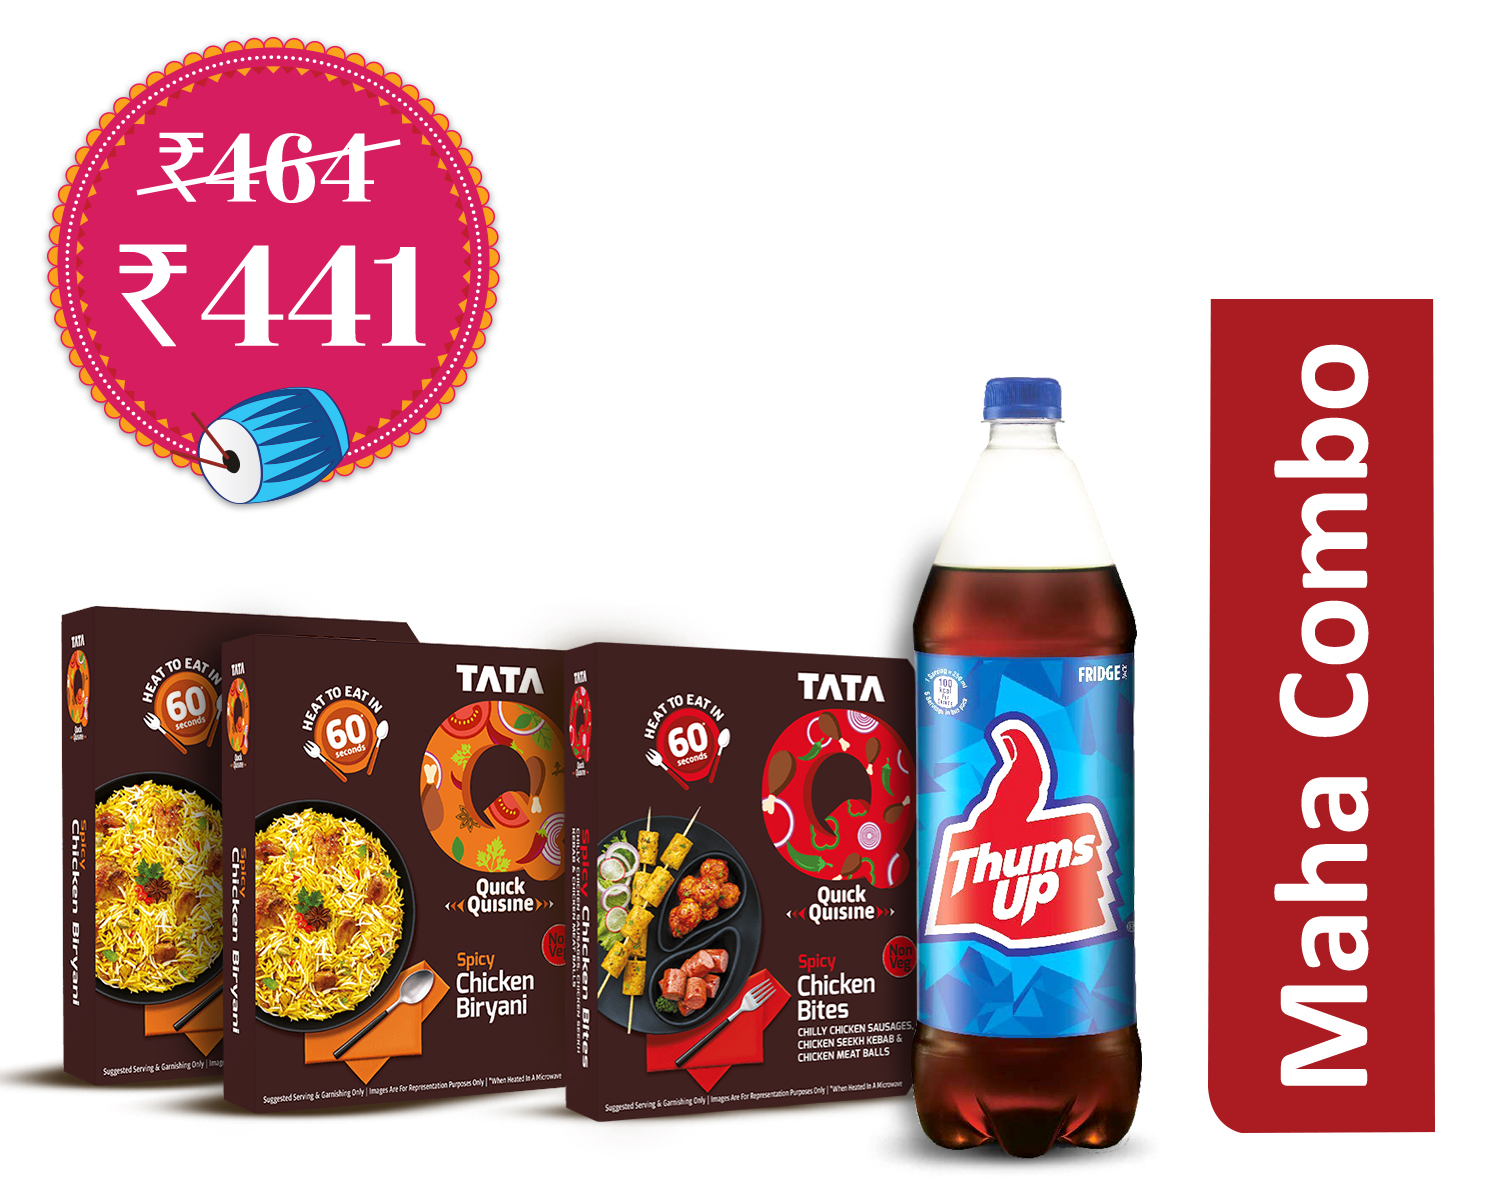 Heavy Feast Delights (1Unit) : Tata Q Spicy Chicken Biryani * 2Pieces + Spicy Chicken Bites 1Pieces + Thums Up 1.25Ltr